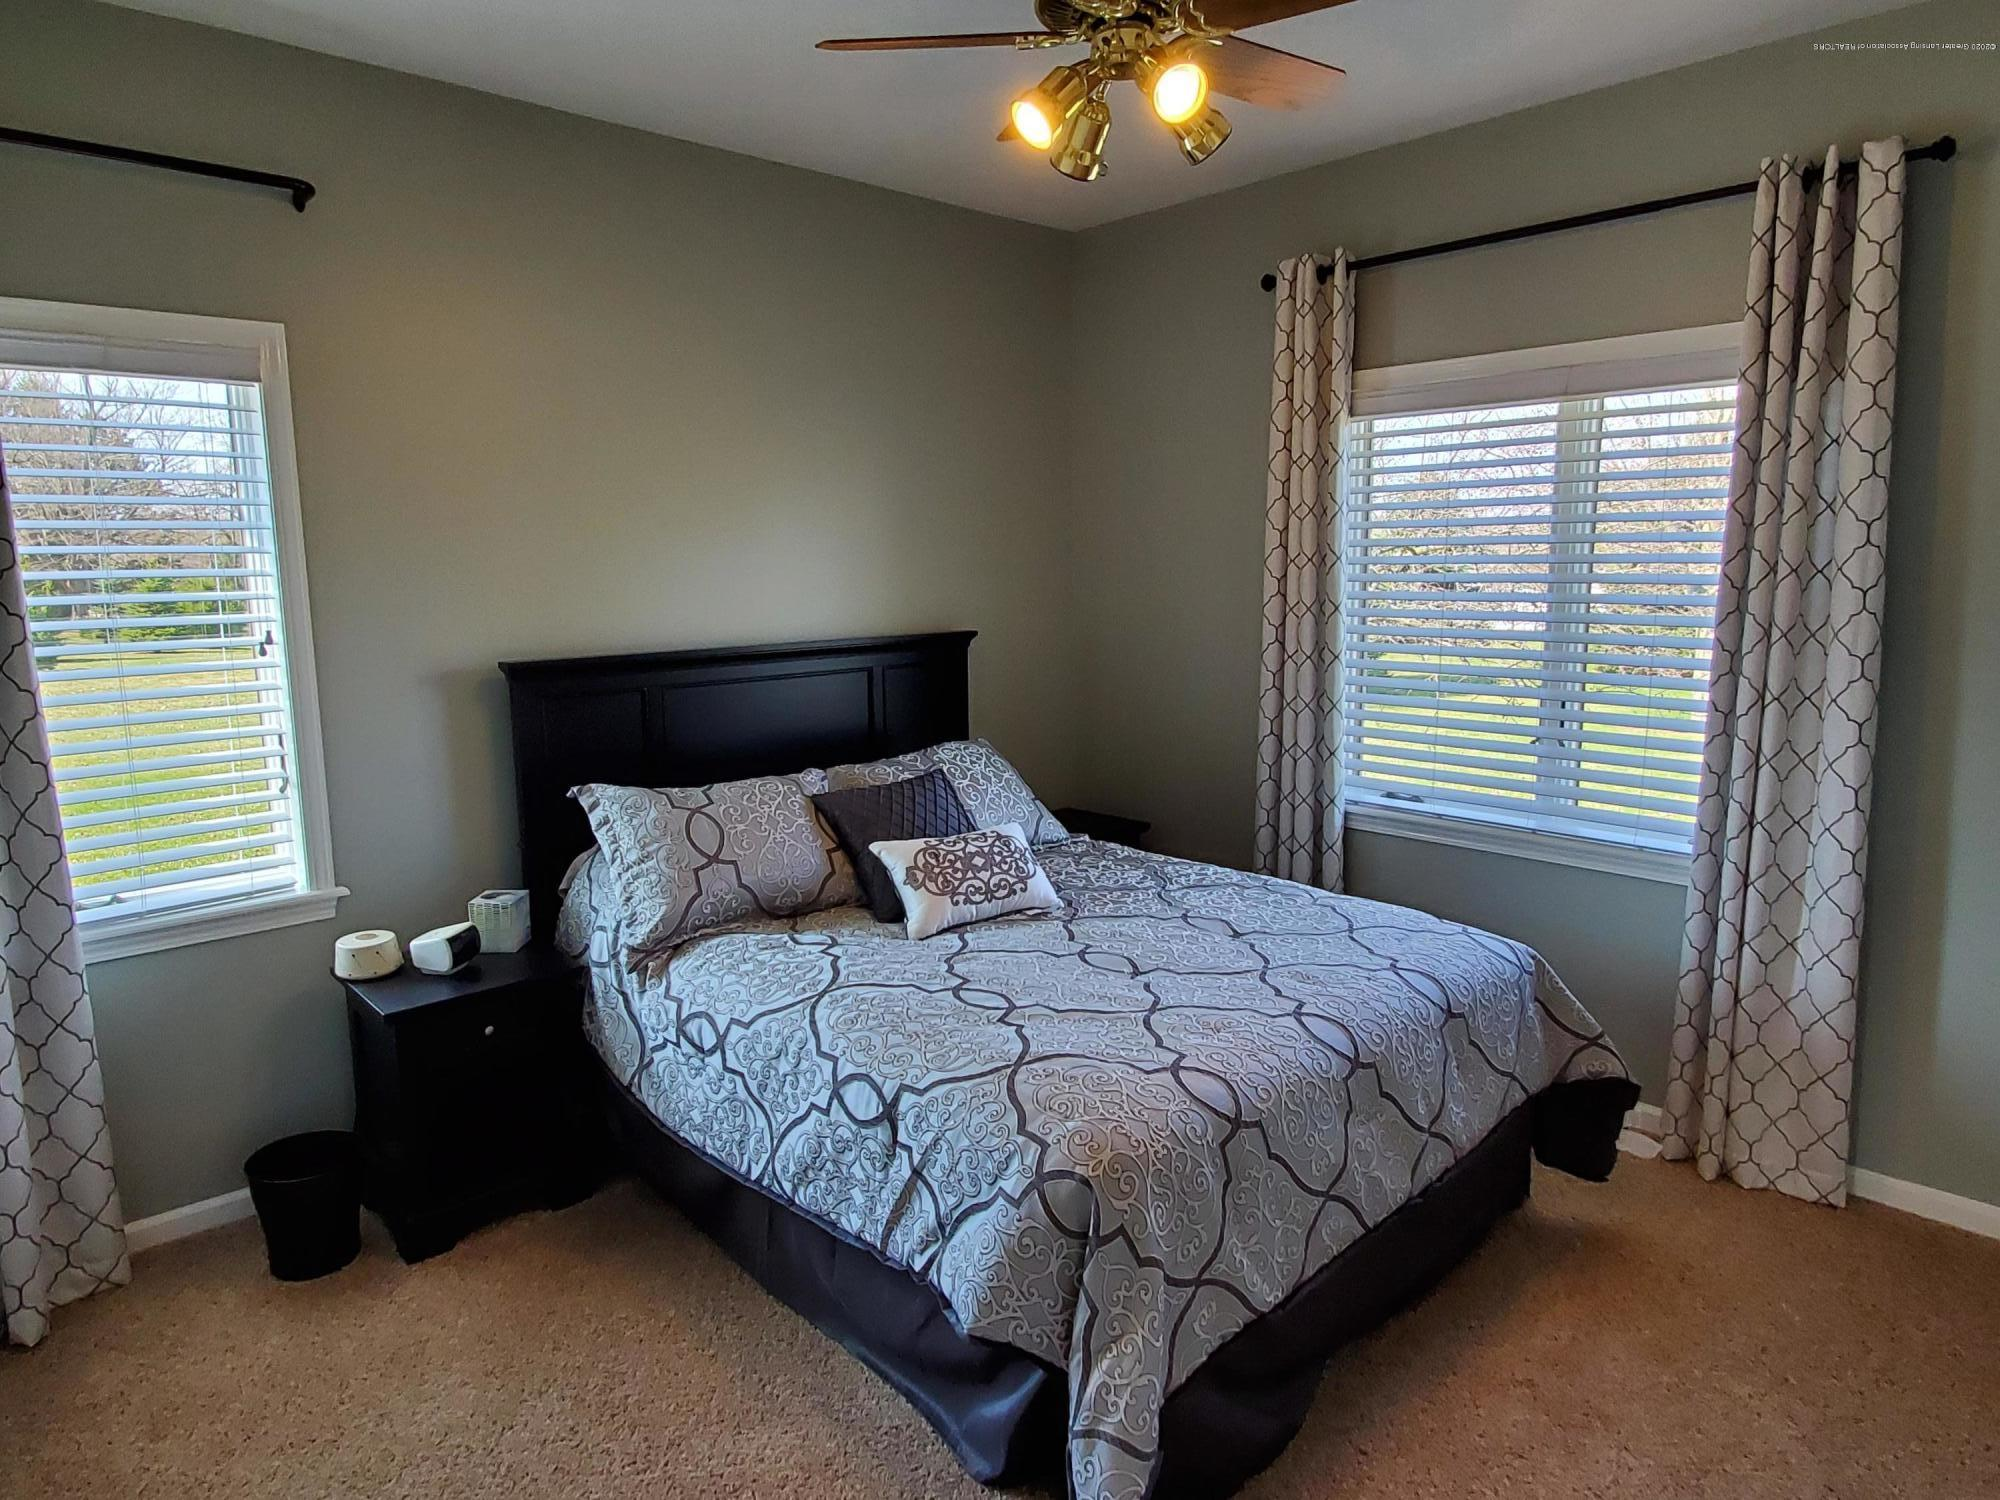 558 N Wheaton Rd - Bedroom 3 - 42